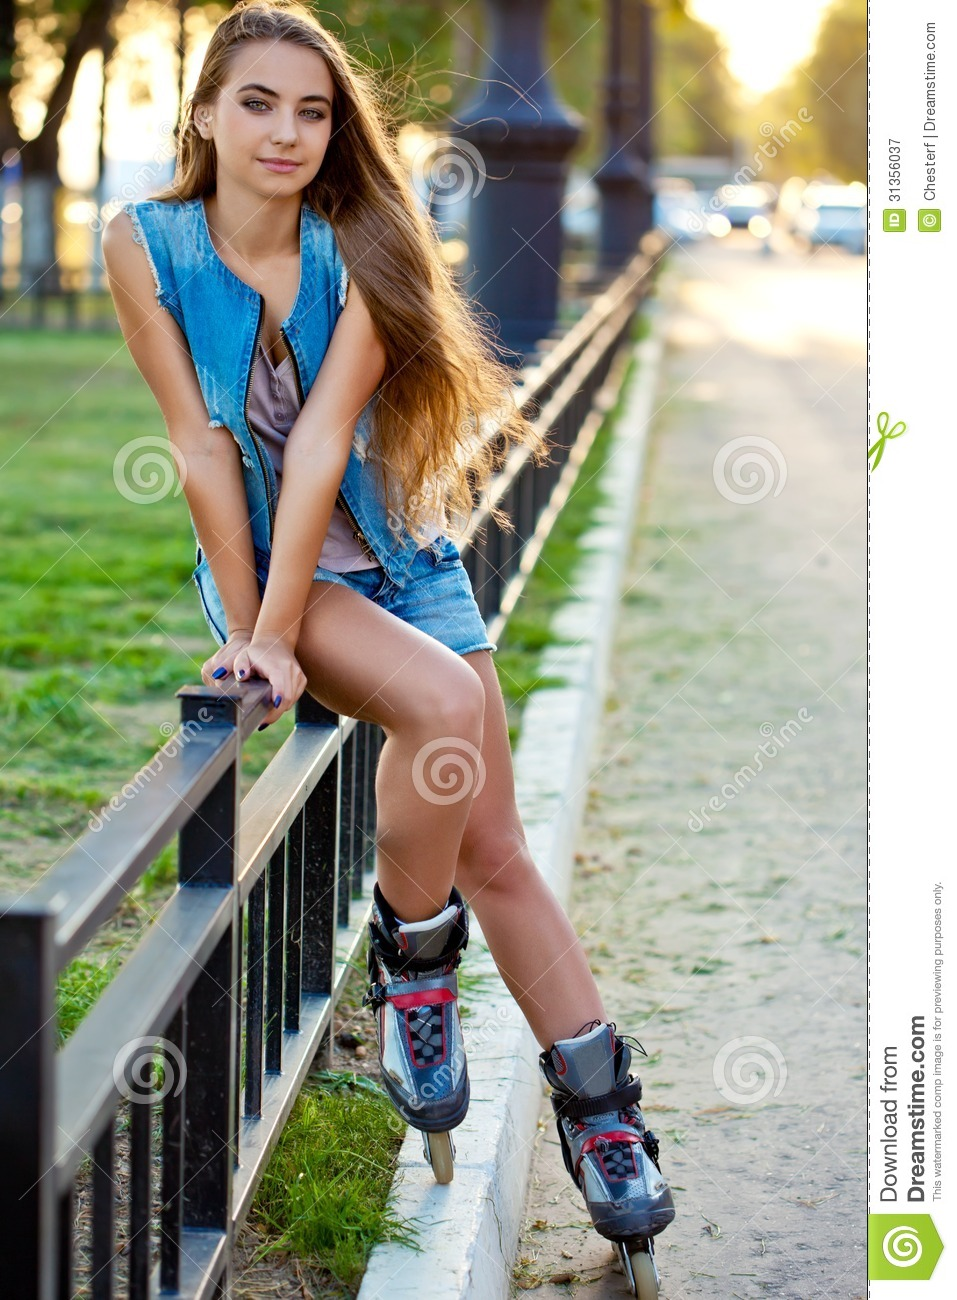 roller girl wearing jeans sitting on iron fence royalty